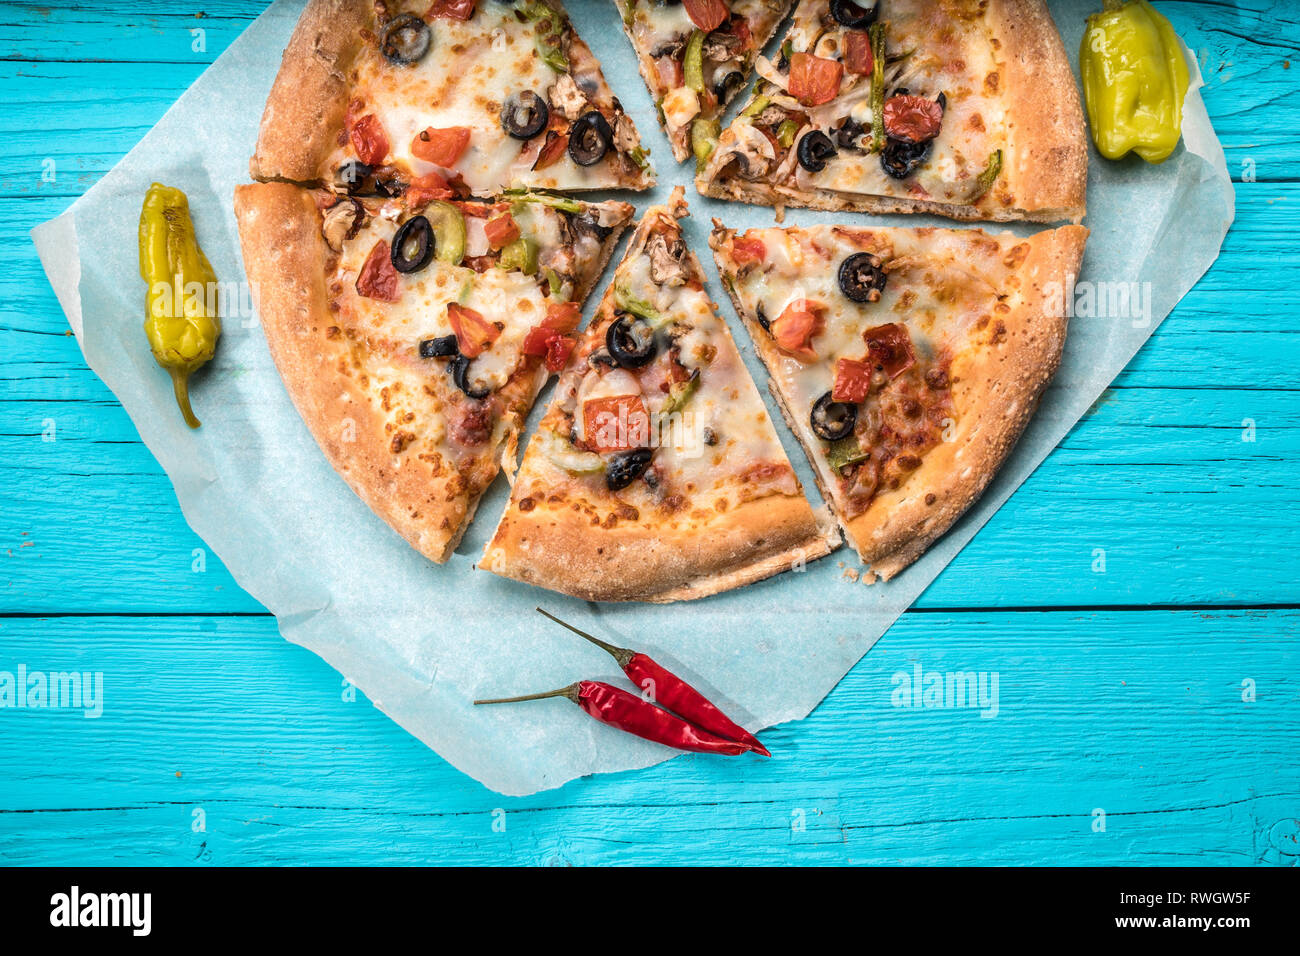 Vegetarian pizza with vegetables on blue table. - Stock Image